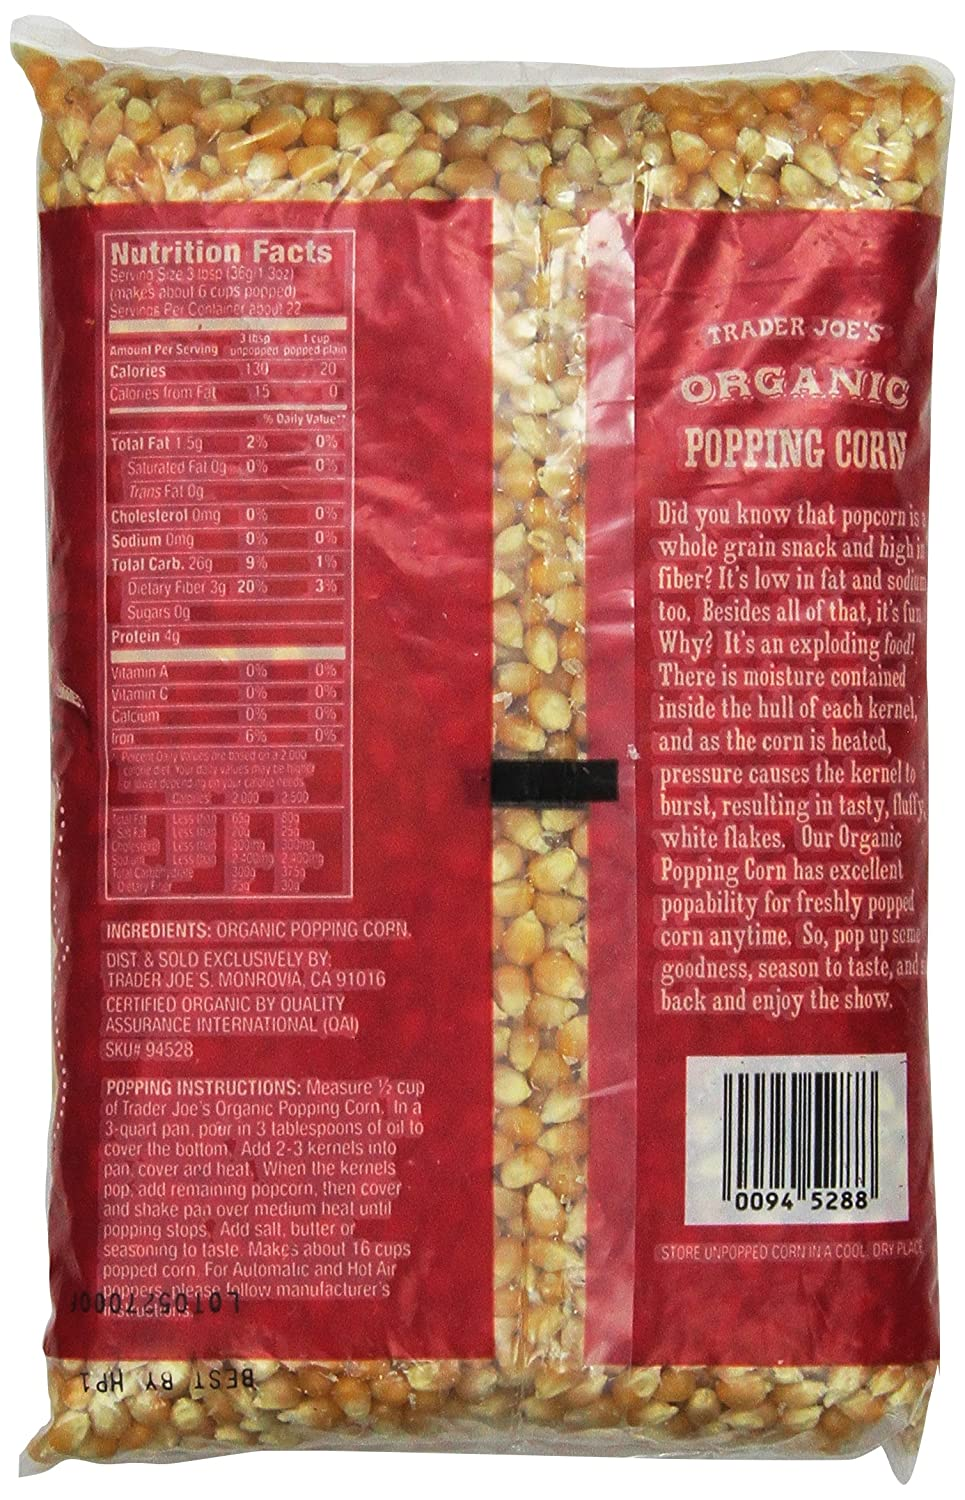 Amazon Com Trader Joe S Organic Popping Corn 28 Oz 1 Lb 12 Oz 794g